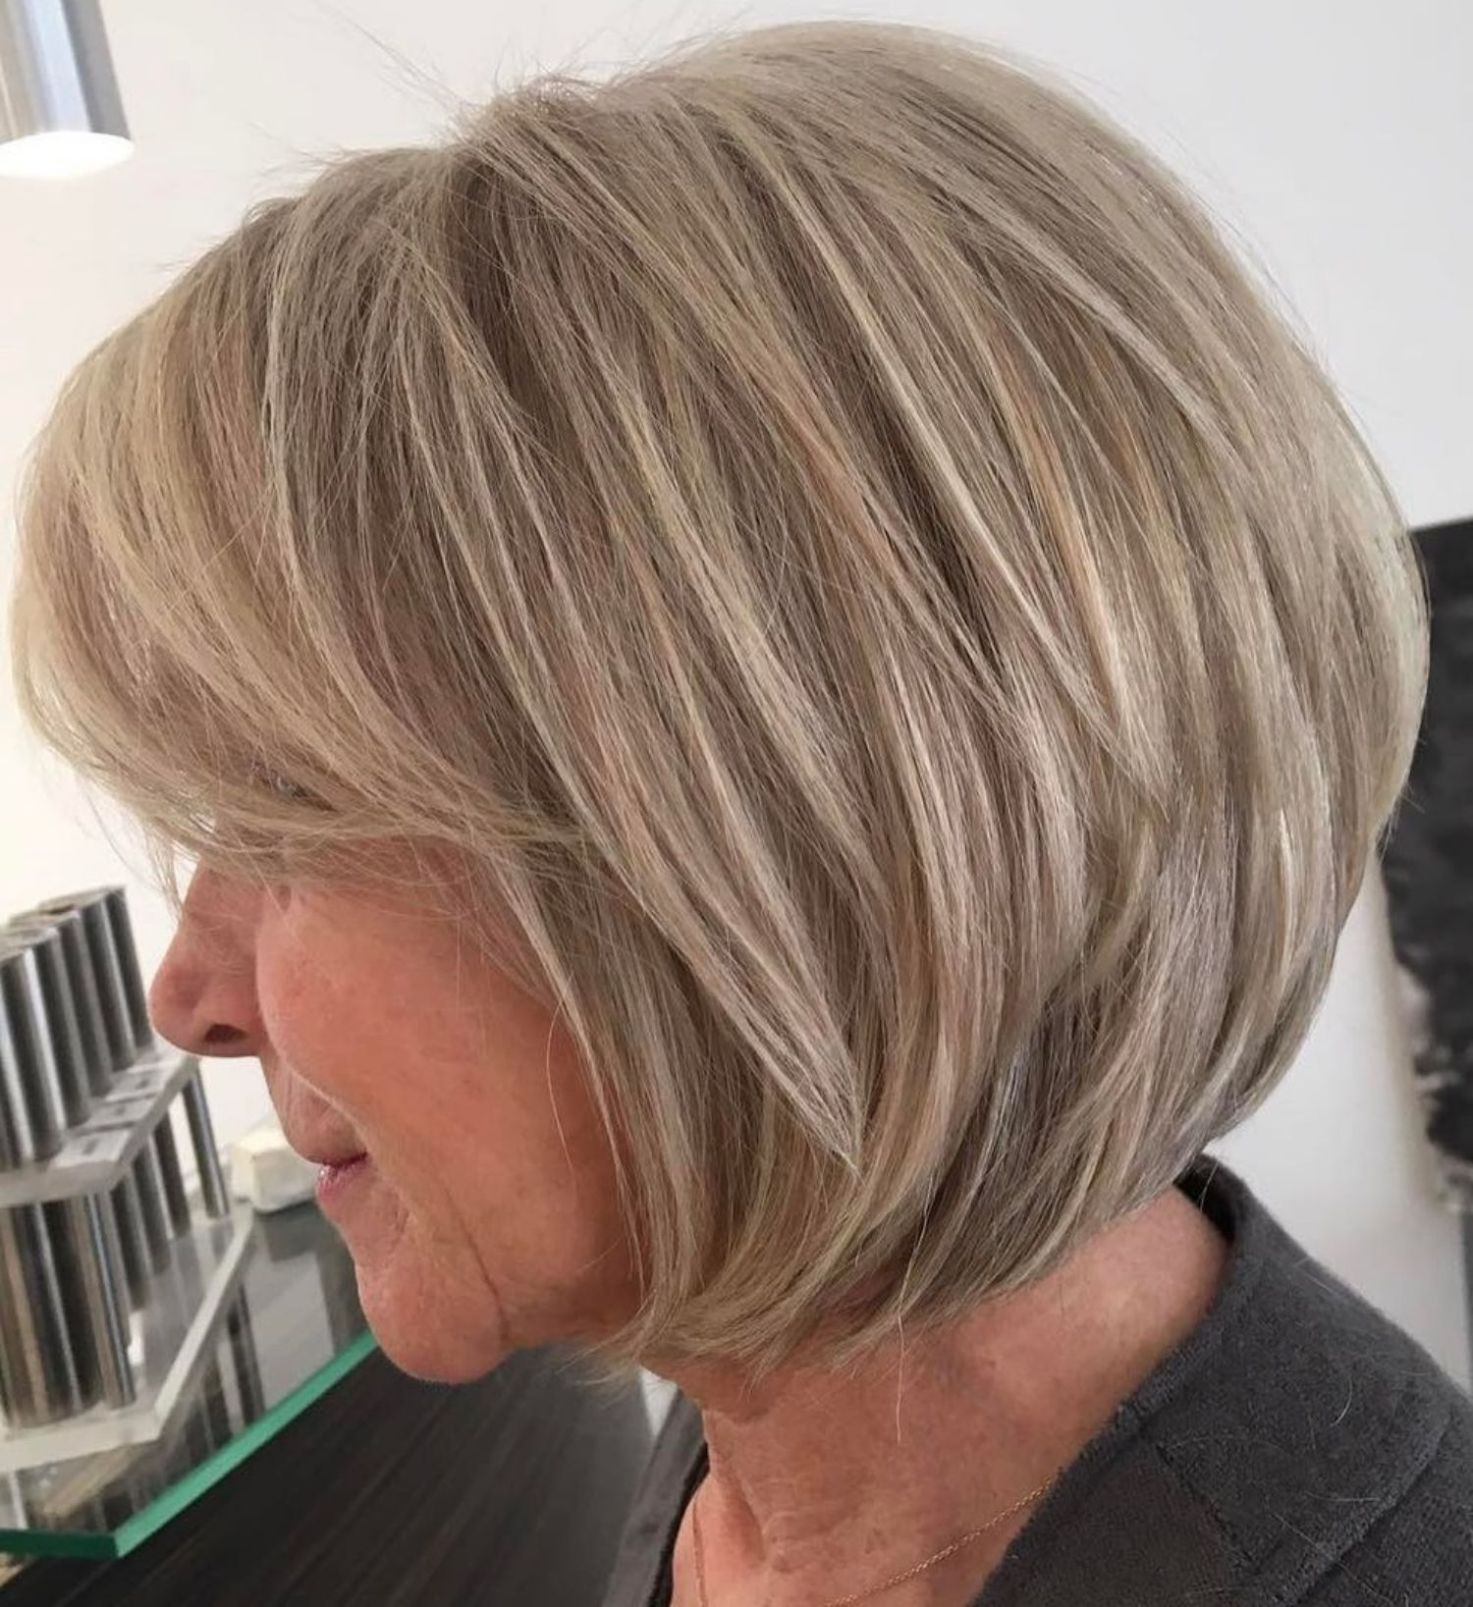 60 Best Hairstyles And Haircuts For Women Over 60 To Suit Any Taste Chin Length Hair Hair Styles Bob Hairstyles For Thick